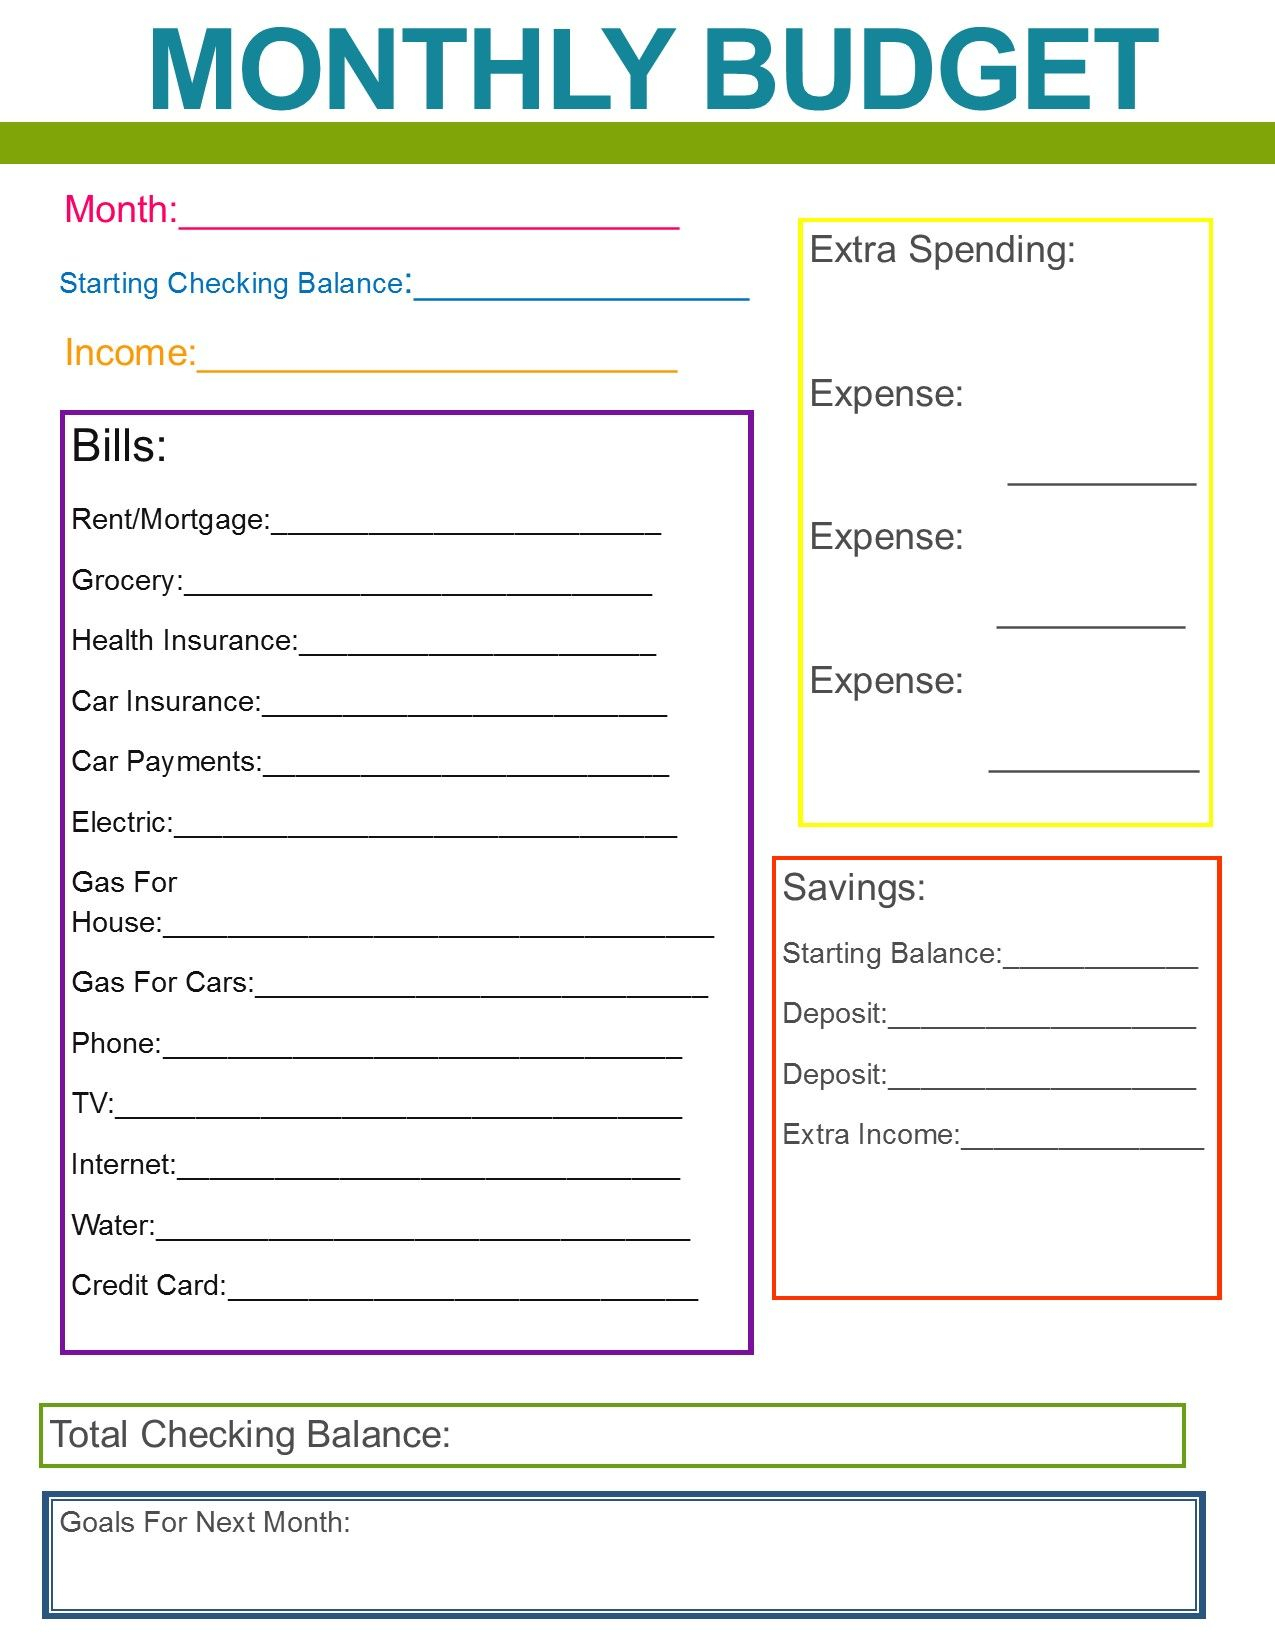 Cedecfbefff Perfect Family Financial Planning Template For Monthly Financial Planning